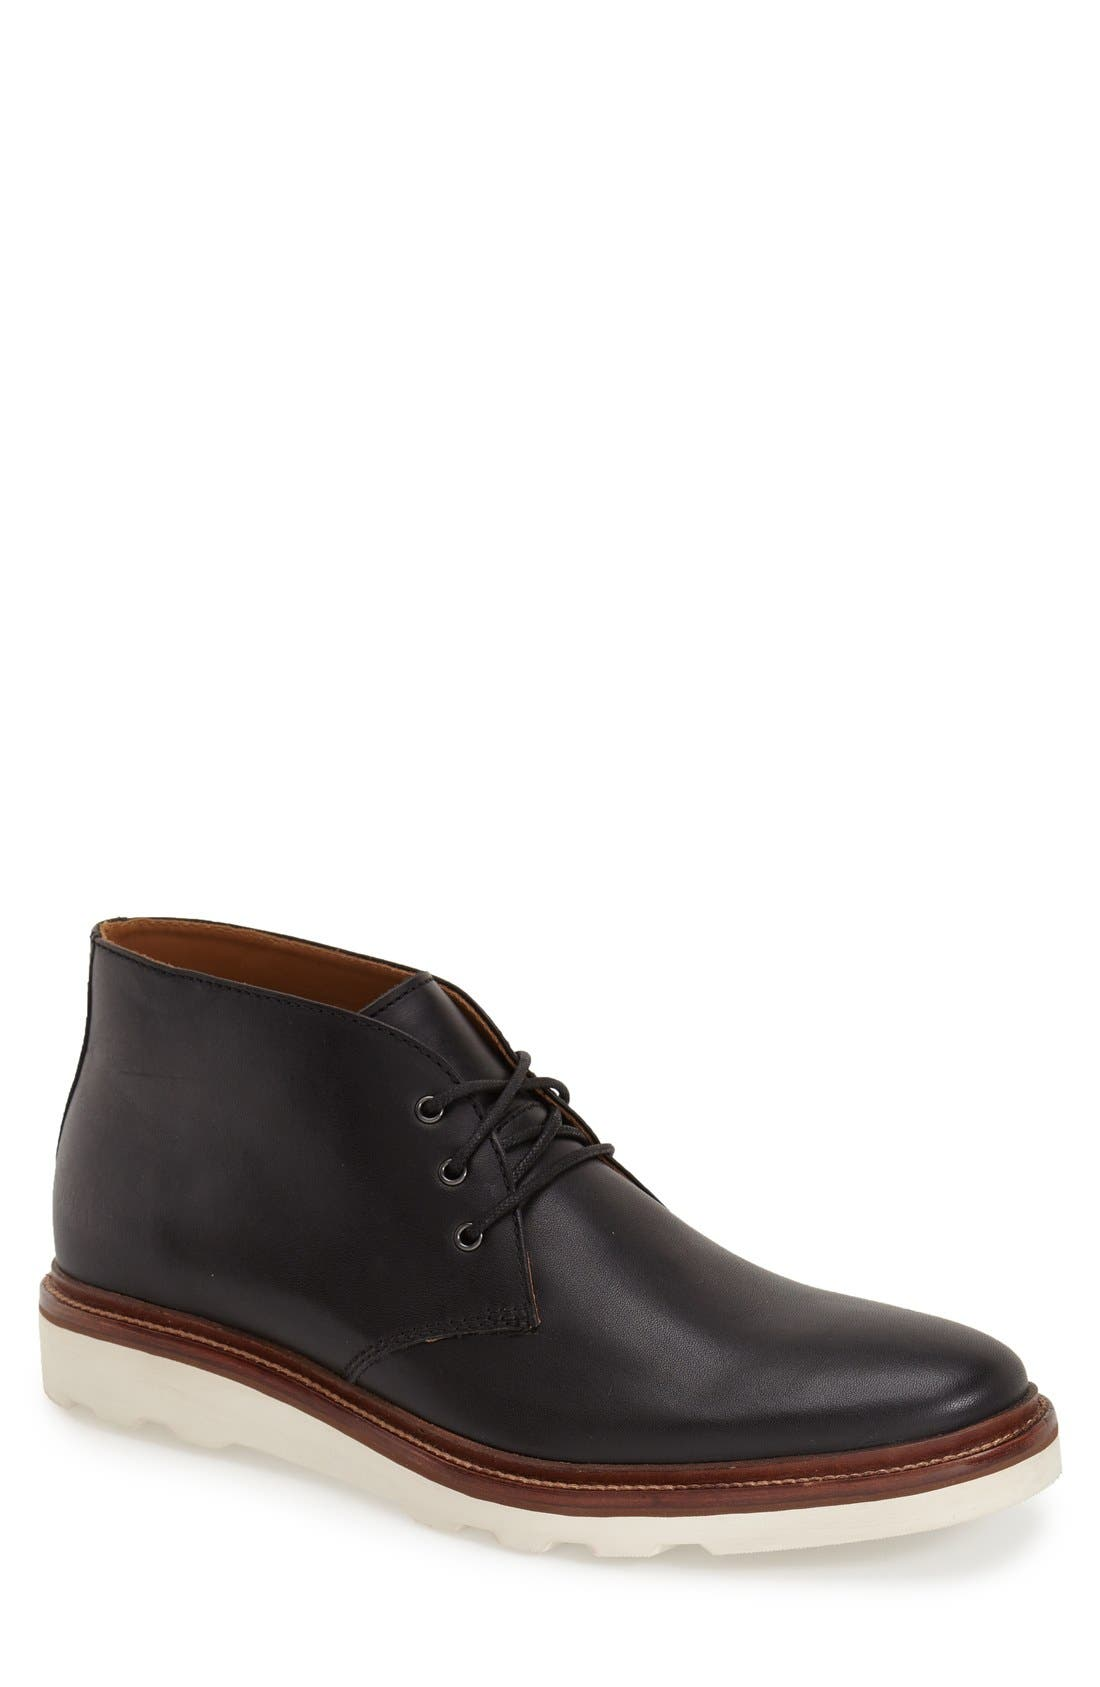 COACH 'Bedford' Chukka Boot, Main, color, 001